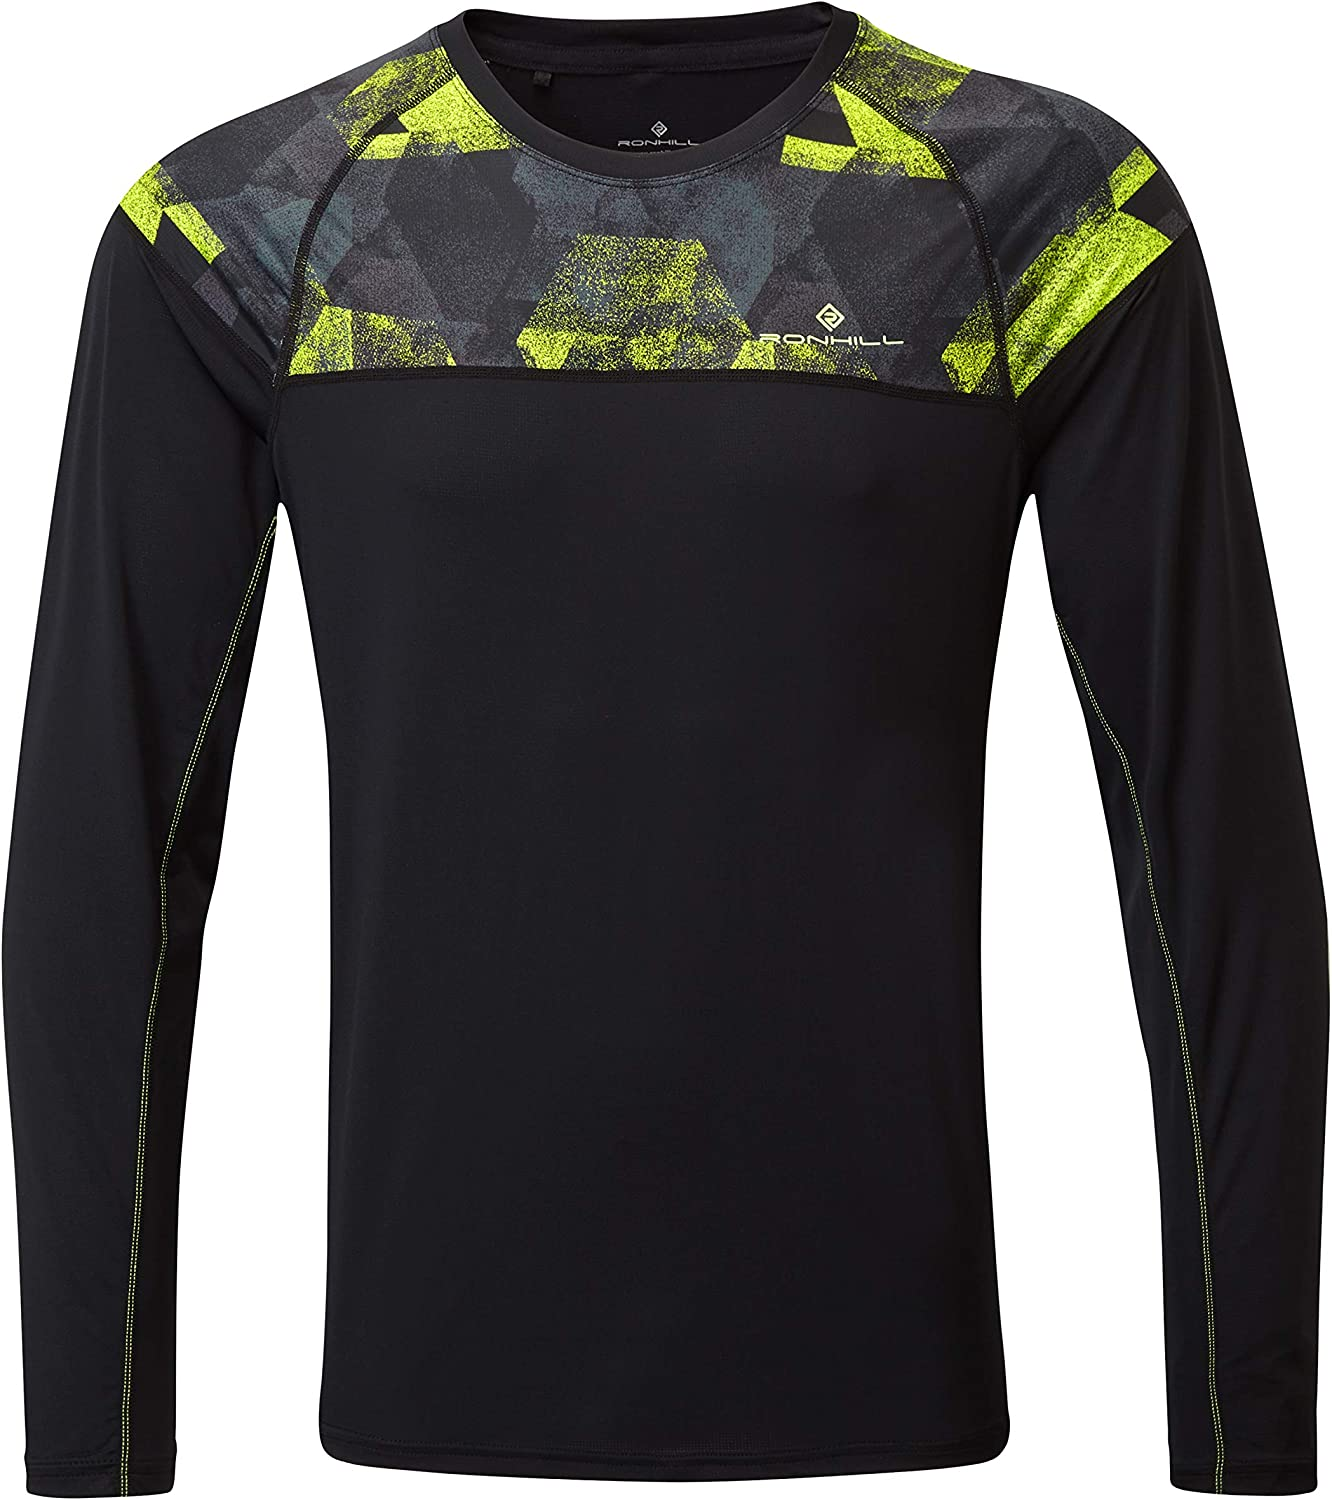 Ronhill Ranking TOP1 Mens Tech Revive S 1 year warranty Tee L